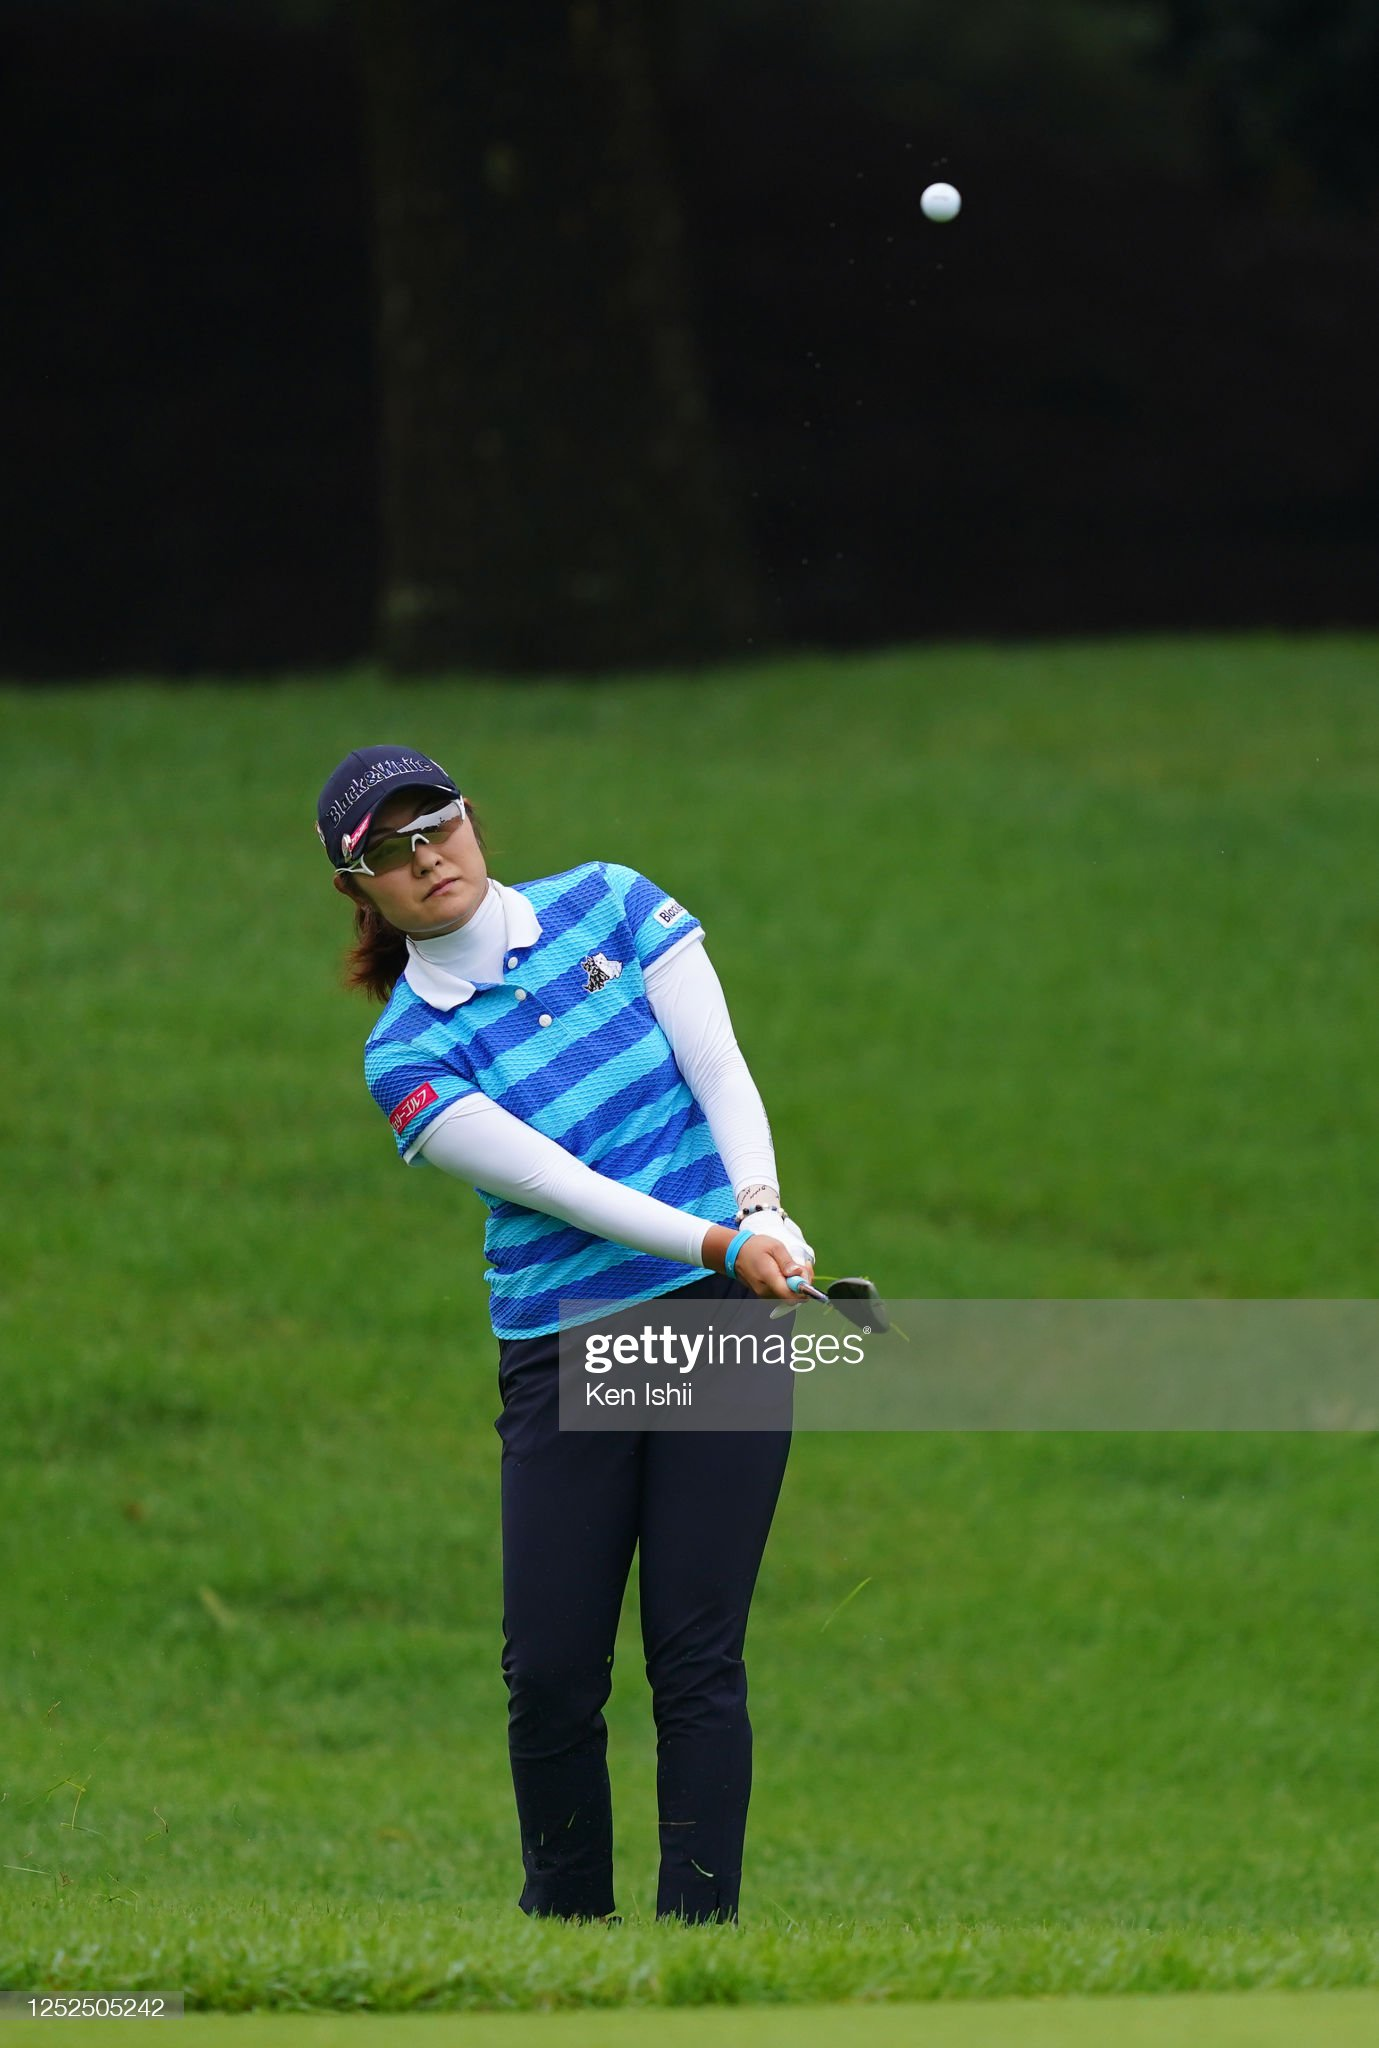 https://media.gettyimages.com/photos/saiki-fujita-of-japan-chips-onto-the-on-the-10th-green-during-the-picture-id1252505242?s=2048x2048